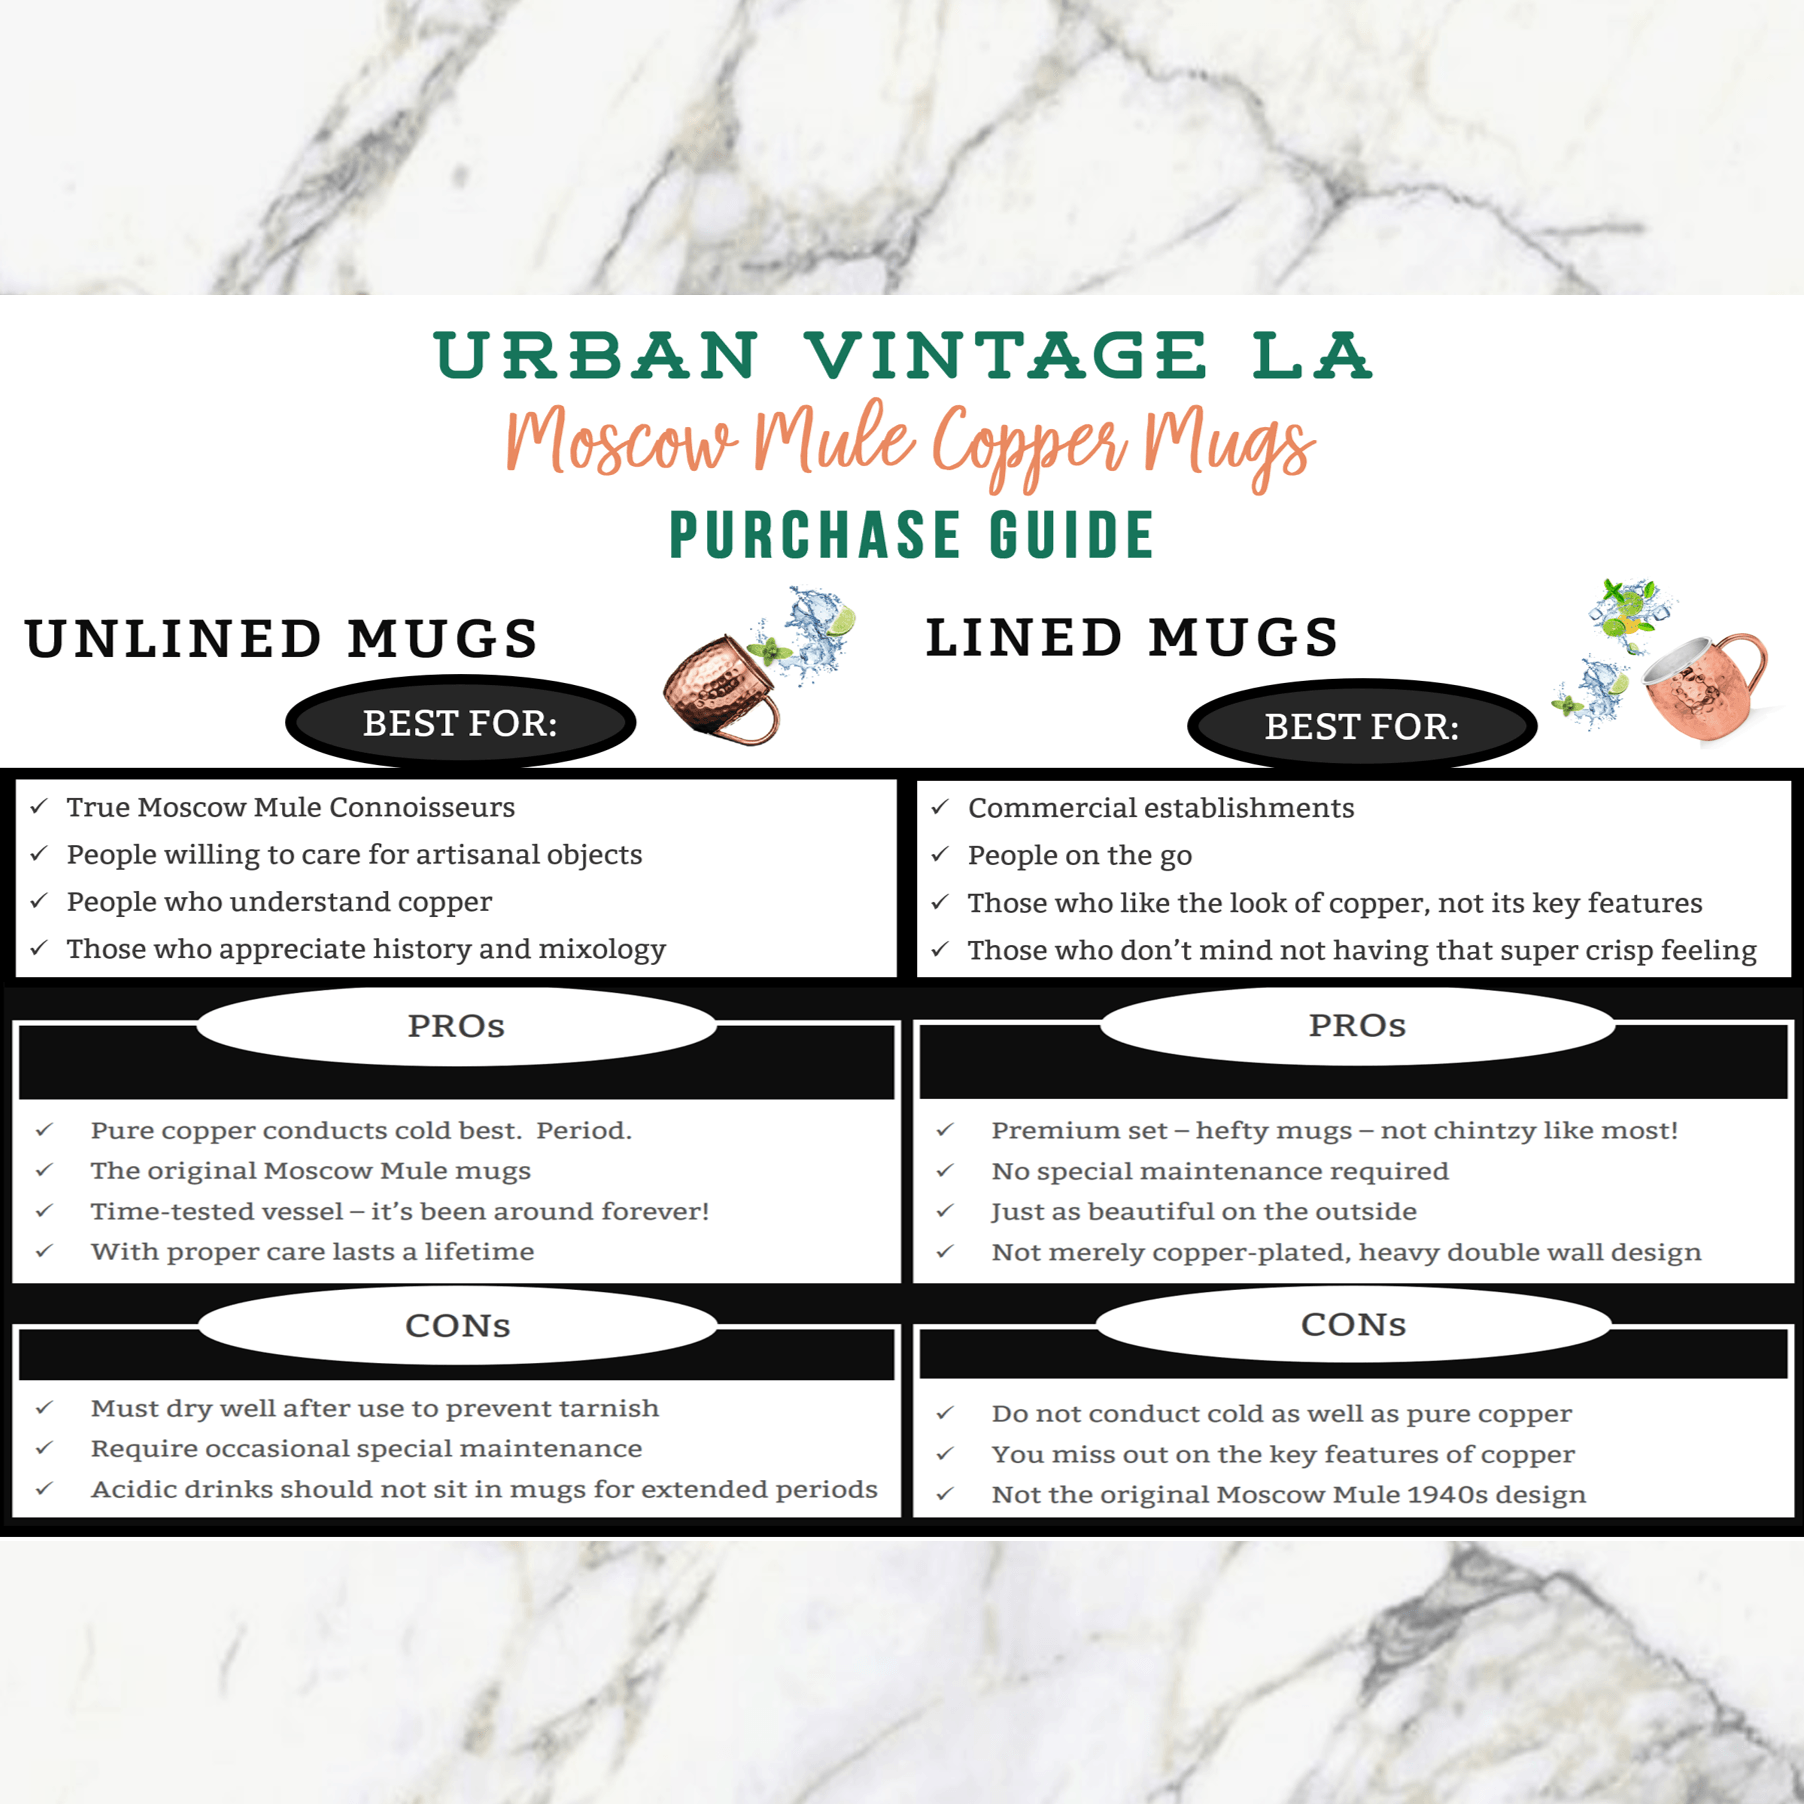 Urban Vintage LA Moscow Mule Copper Mugs Purchase Guide With Benefits, Pros and Cons On Lined VS Unlined Copper Mugs